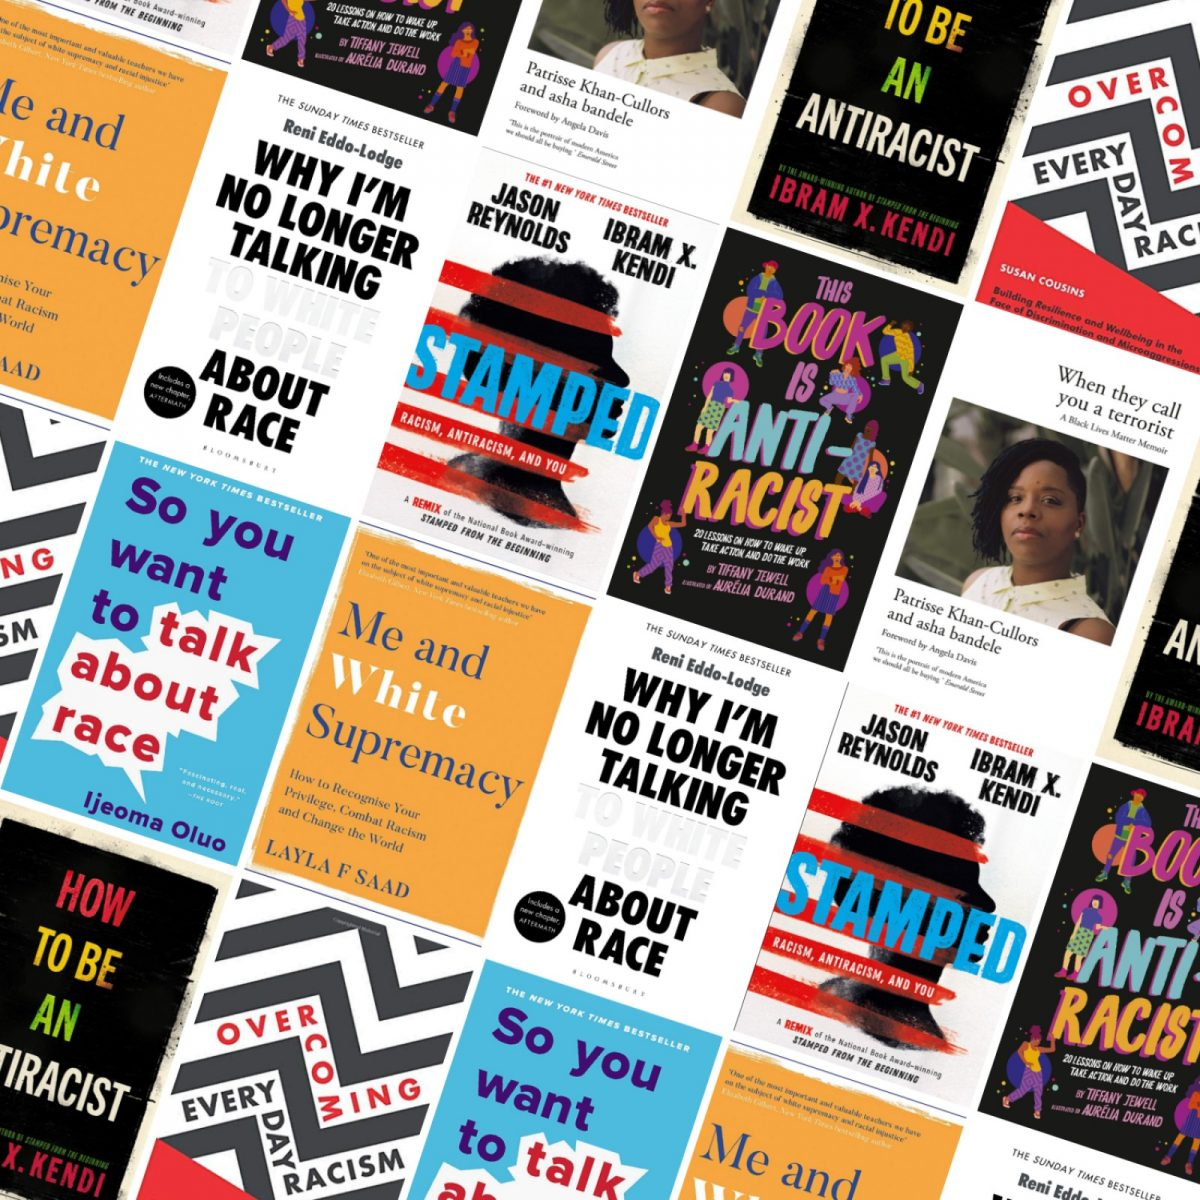 Do the work: an anti-racist reading list